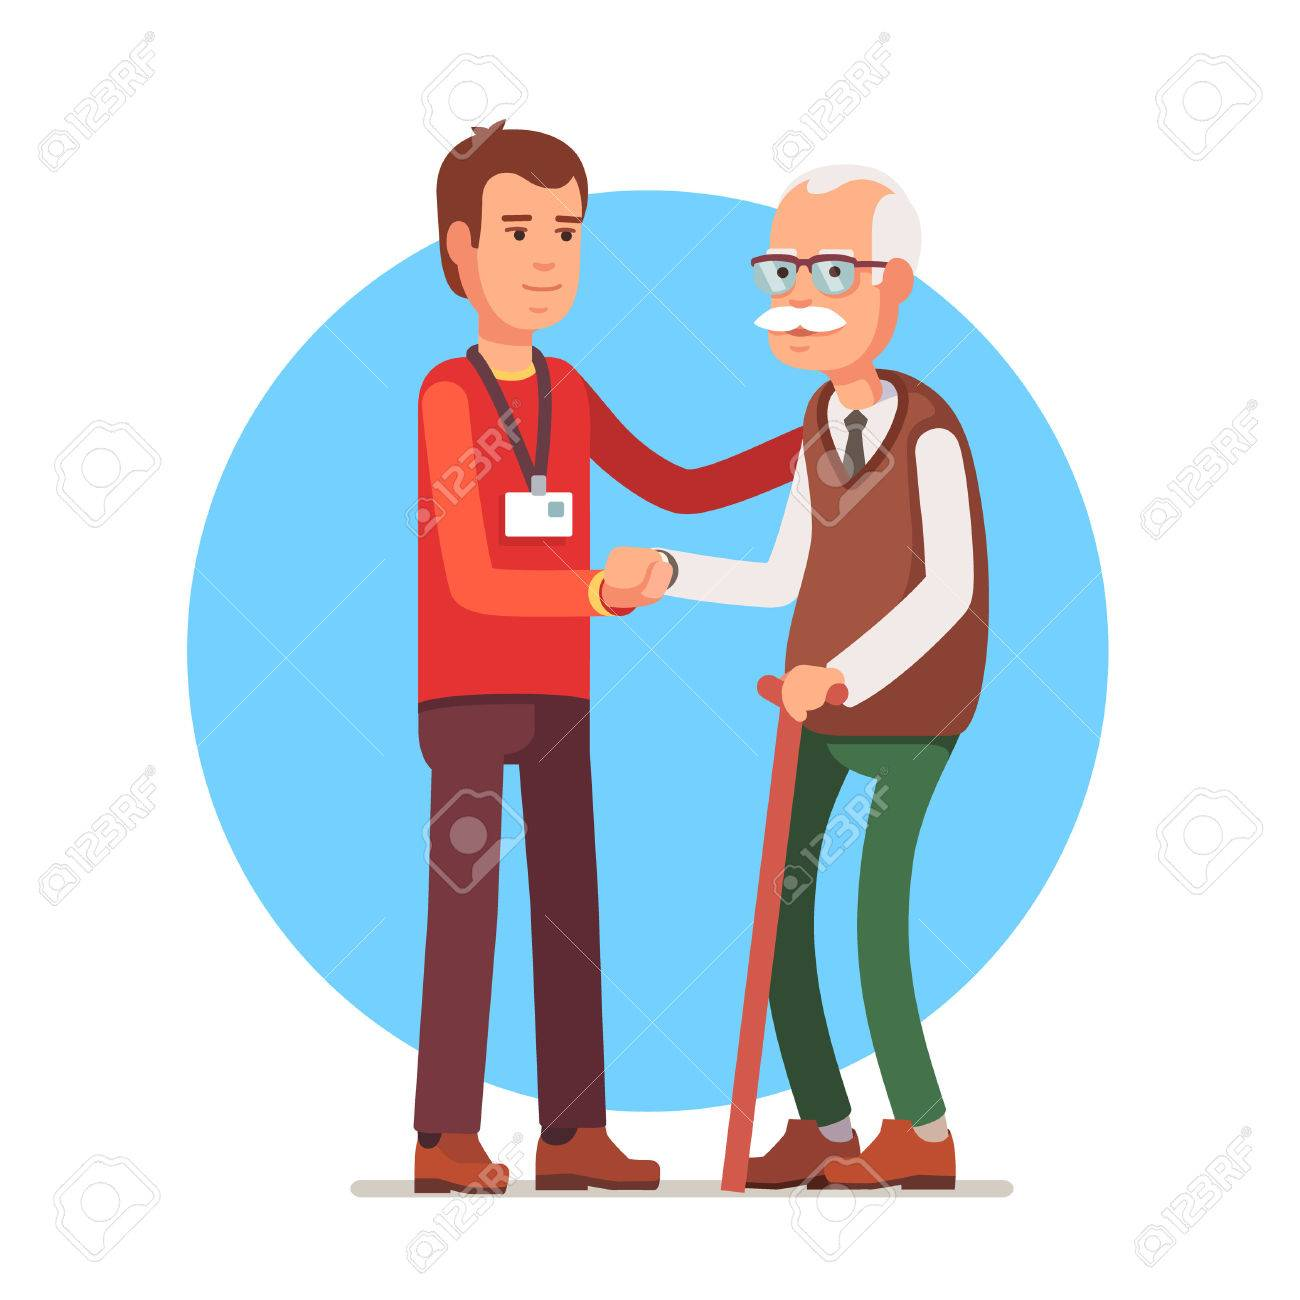 Young man social worker helping elder grey haired man standing with a cane. Flat style vector illustration isolated on white background. - 54217195